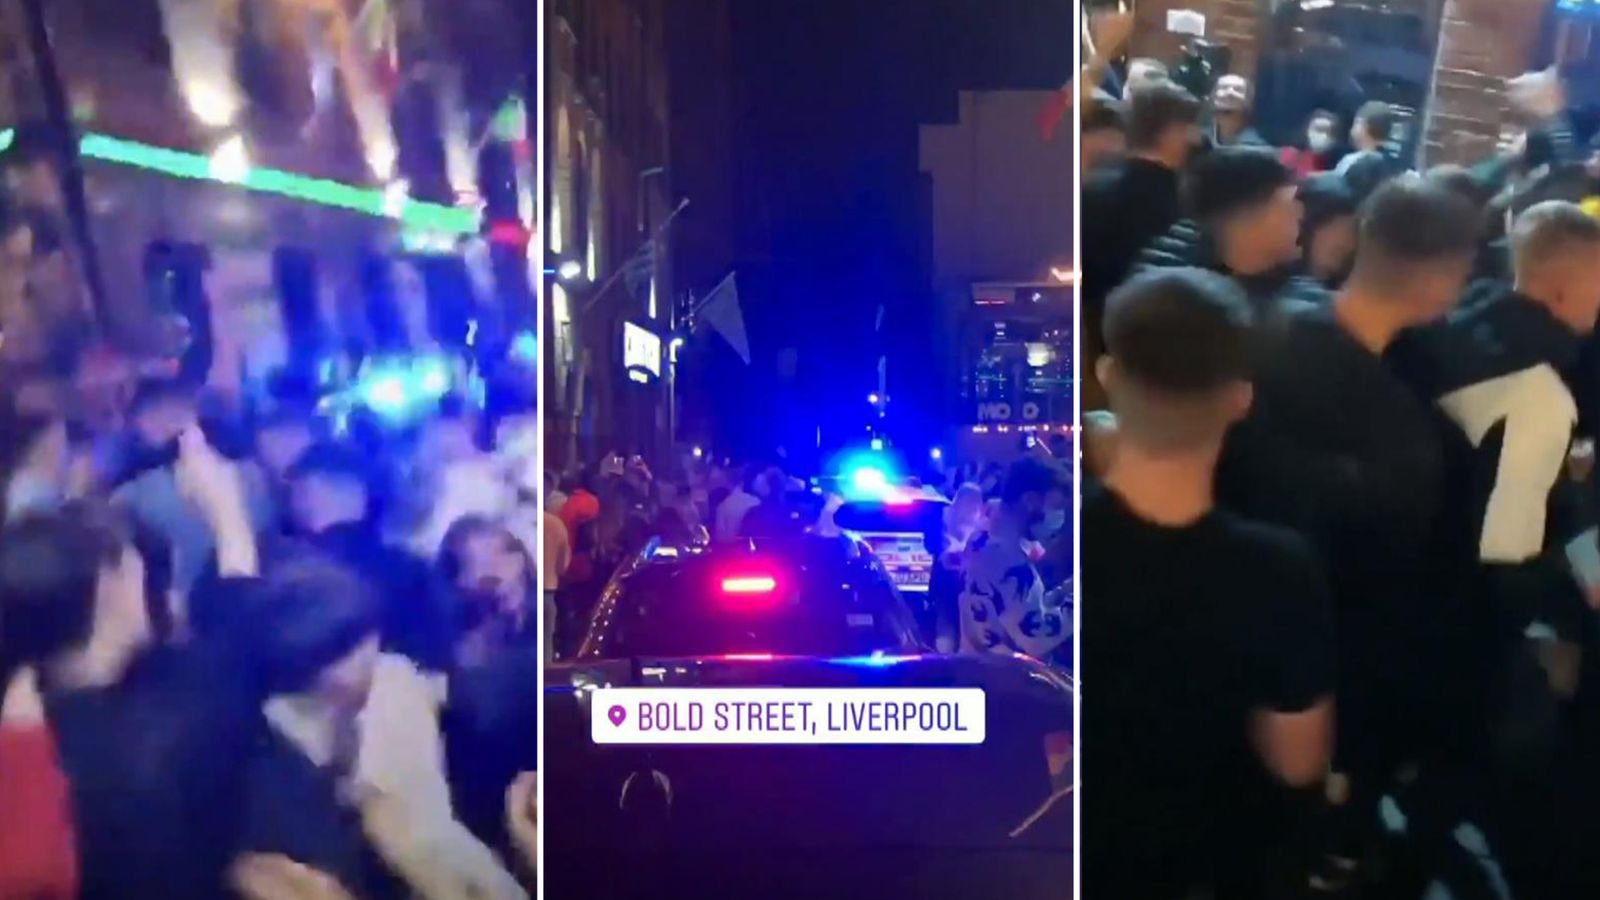 Corona virus: 'Large crowd' disperses from Liverpool city center – two hours before the start of the crackdown  UK News